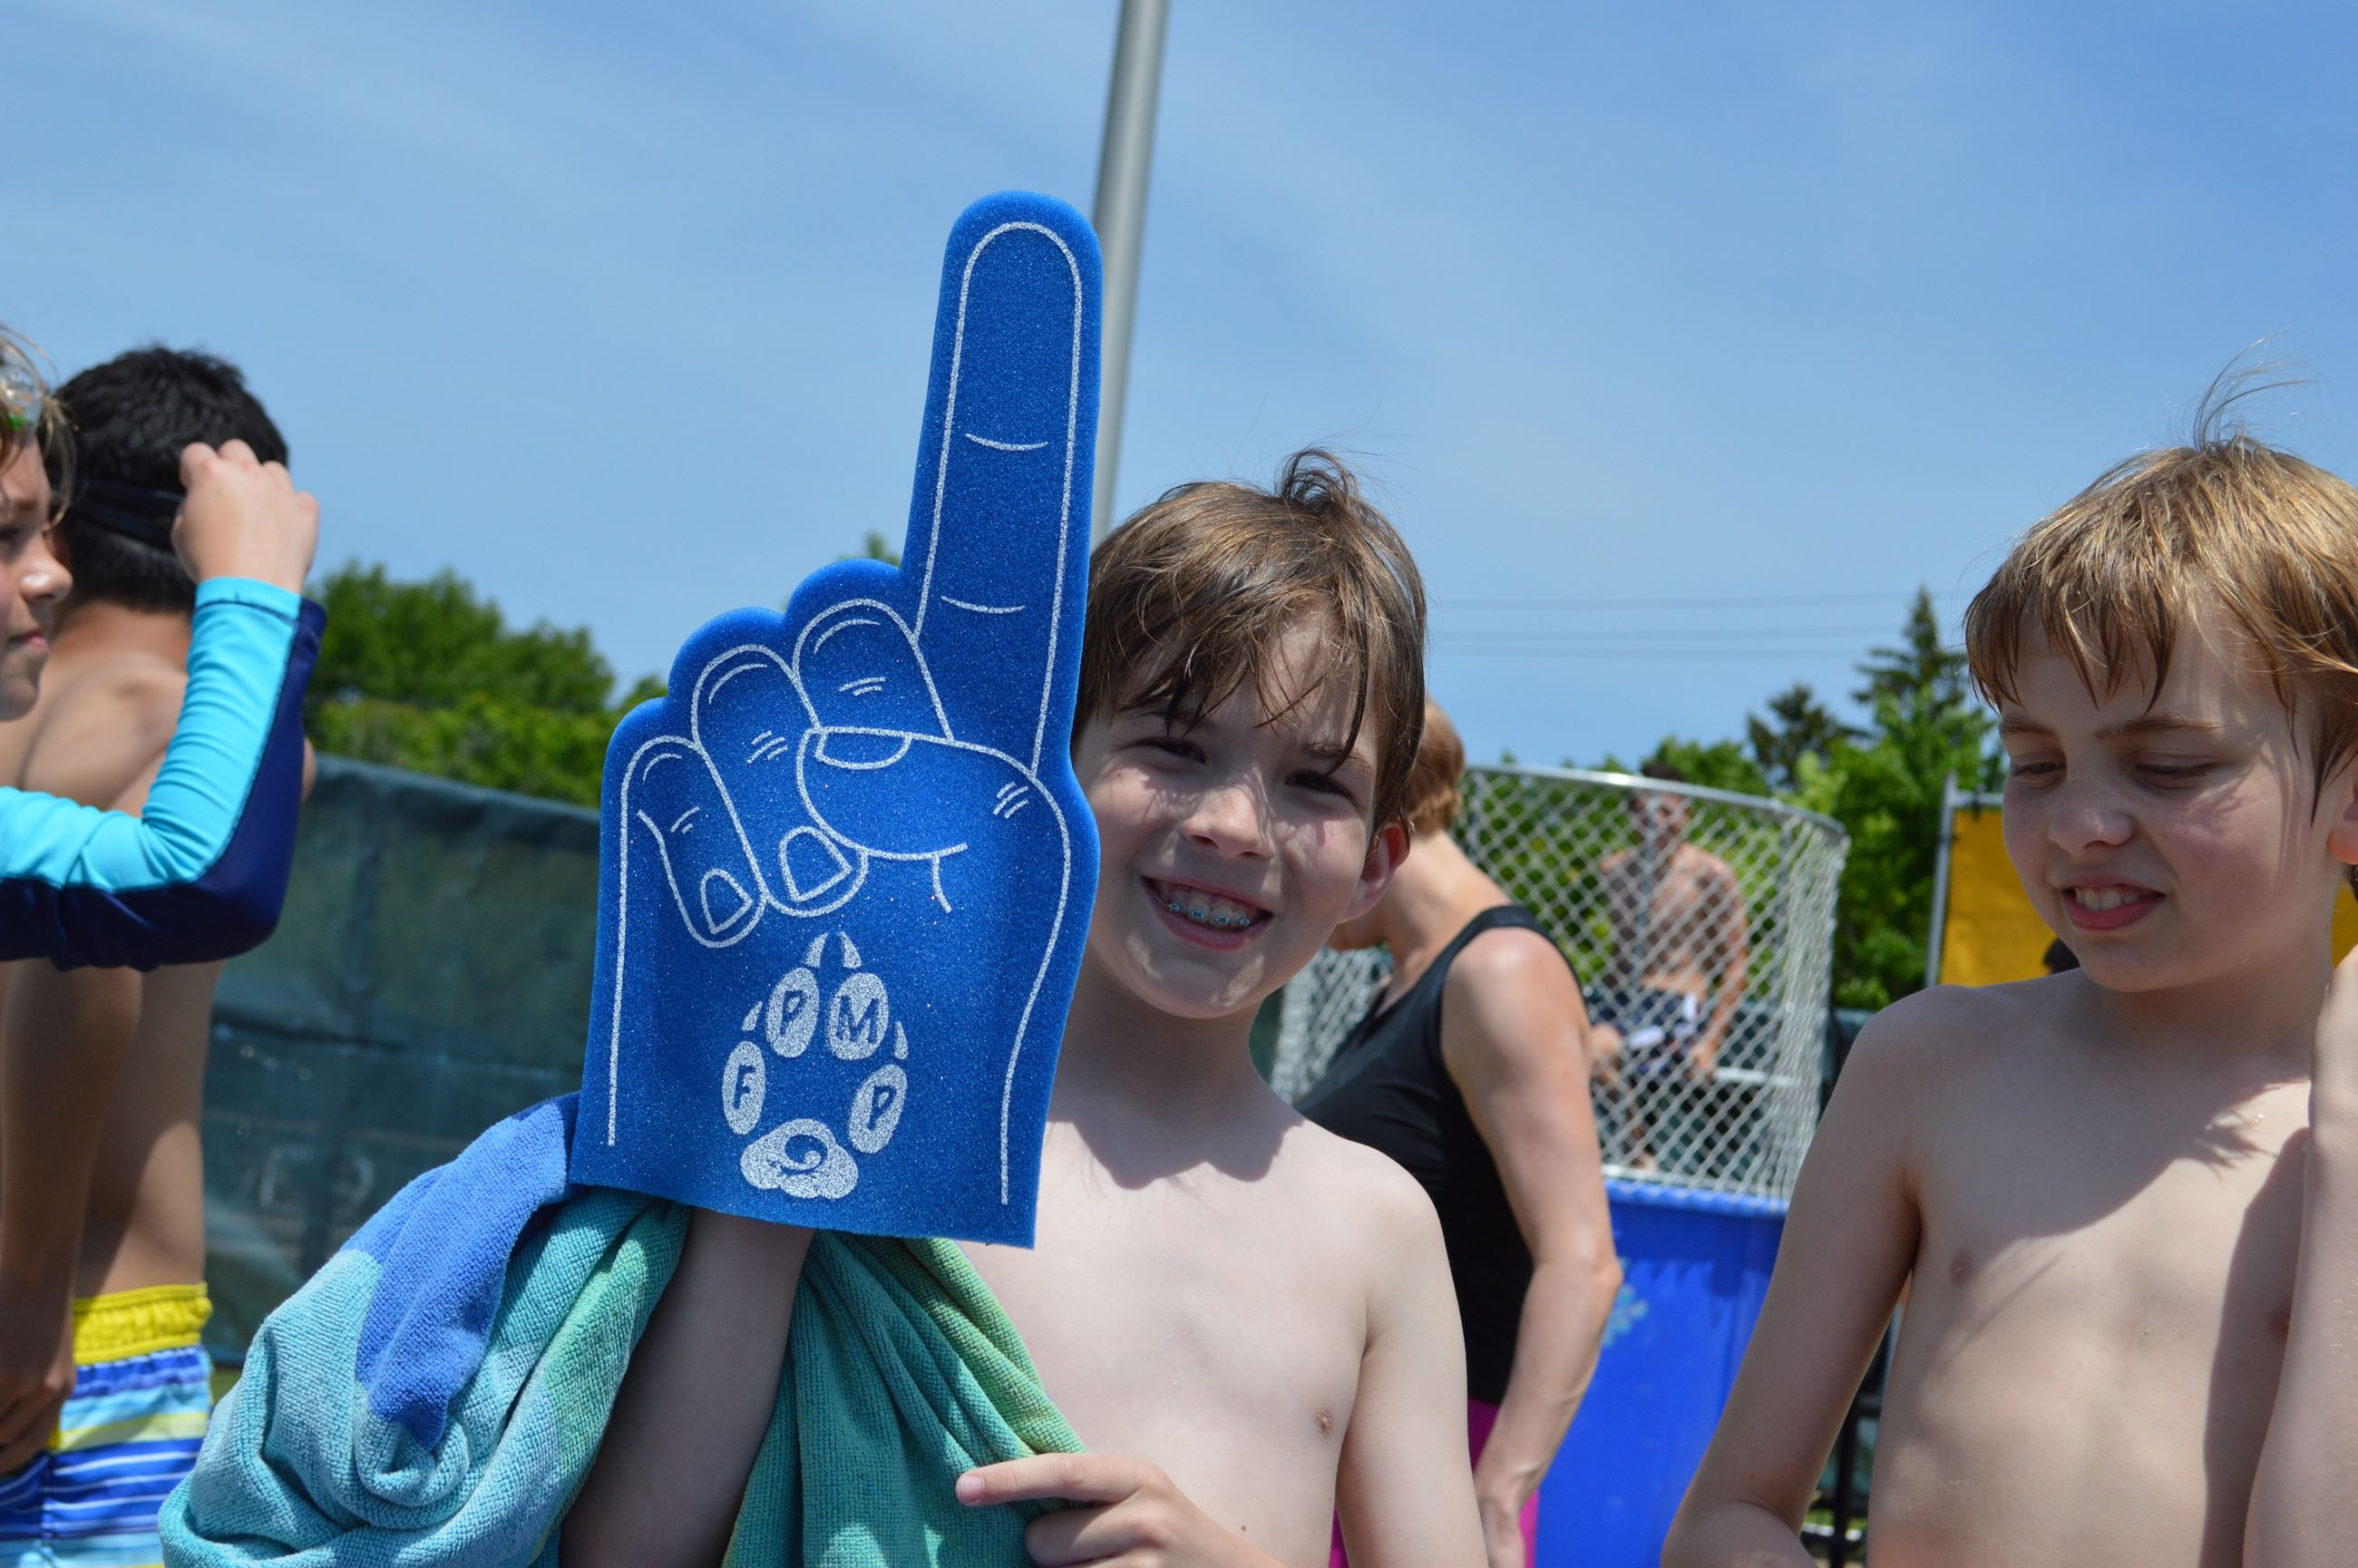 Kid holding a number 1 foam finger at the pool